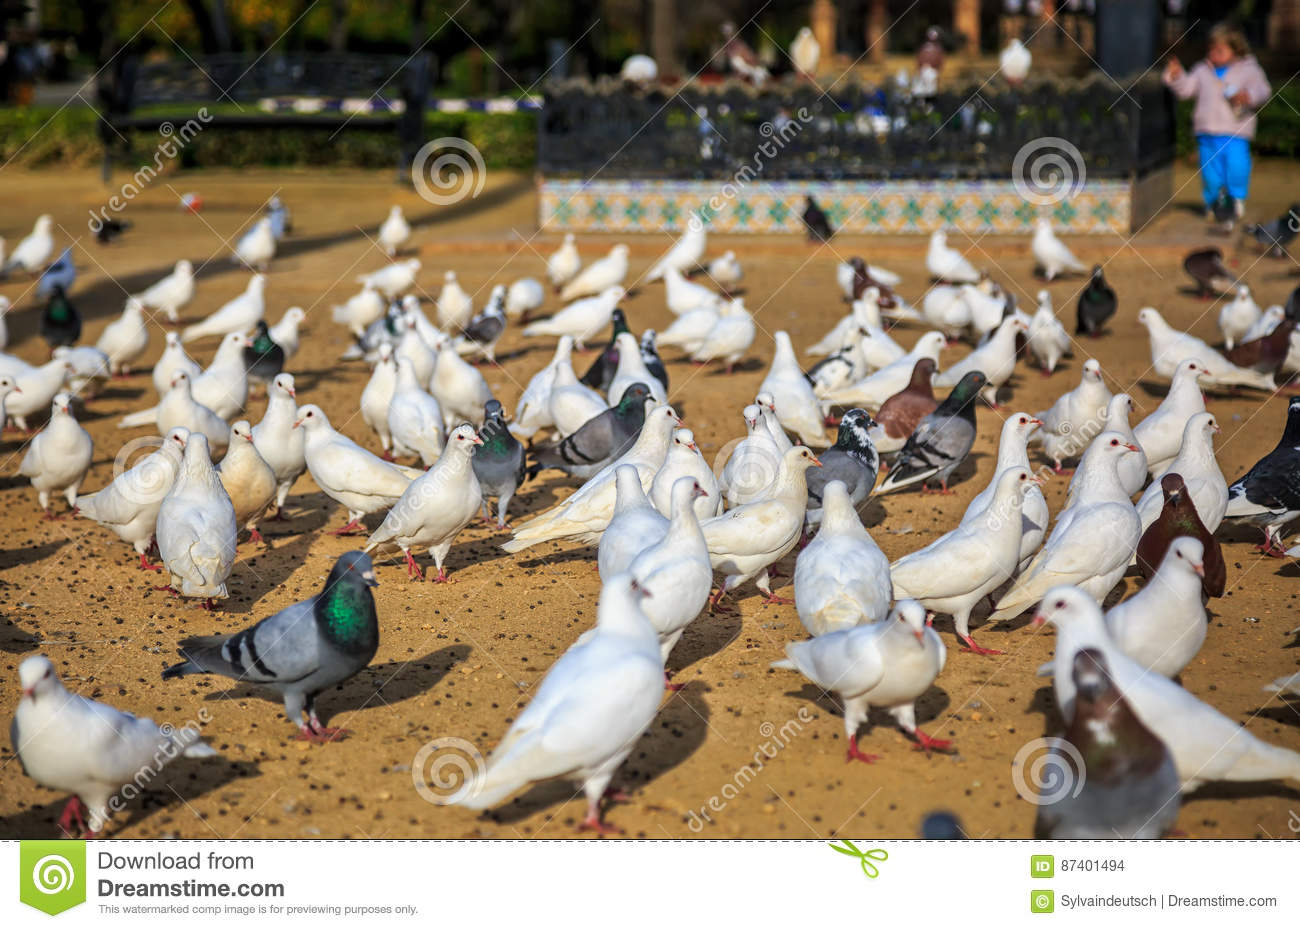 Place crowded of Birds